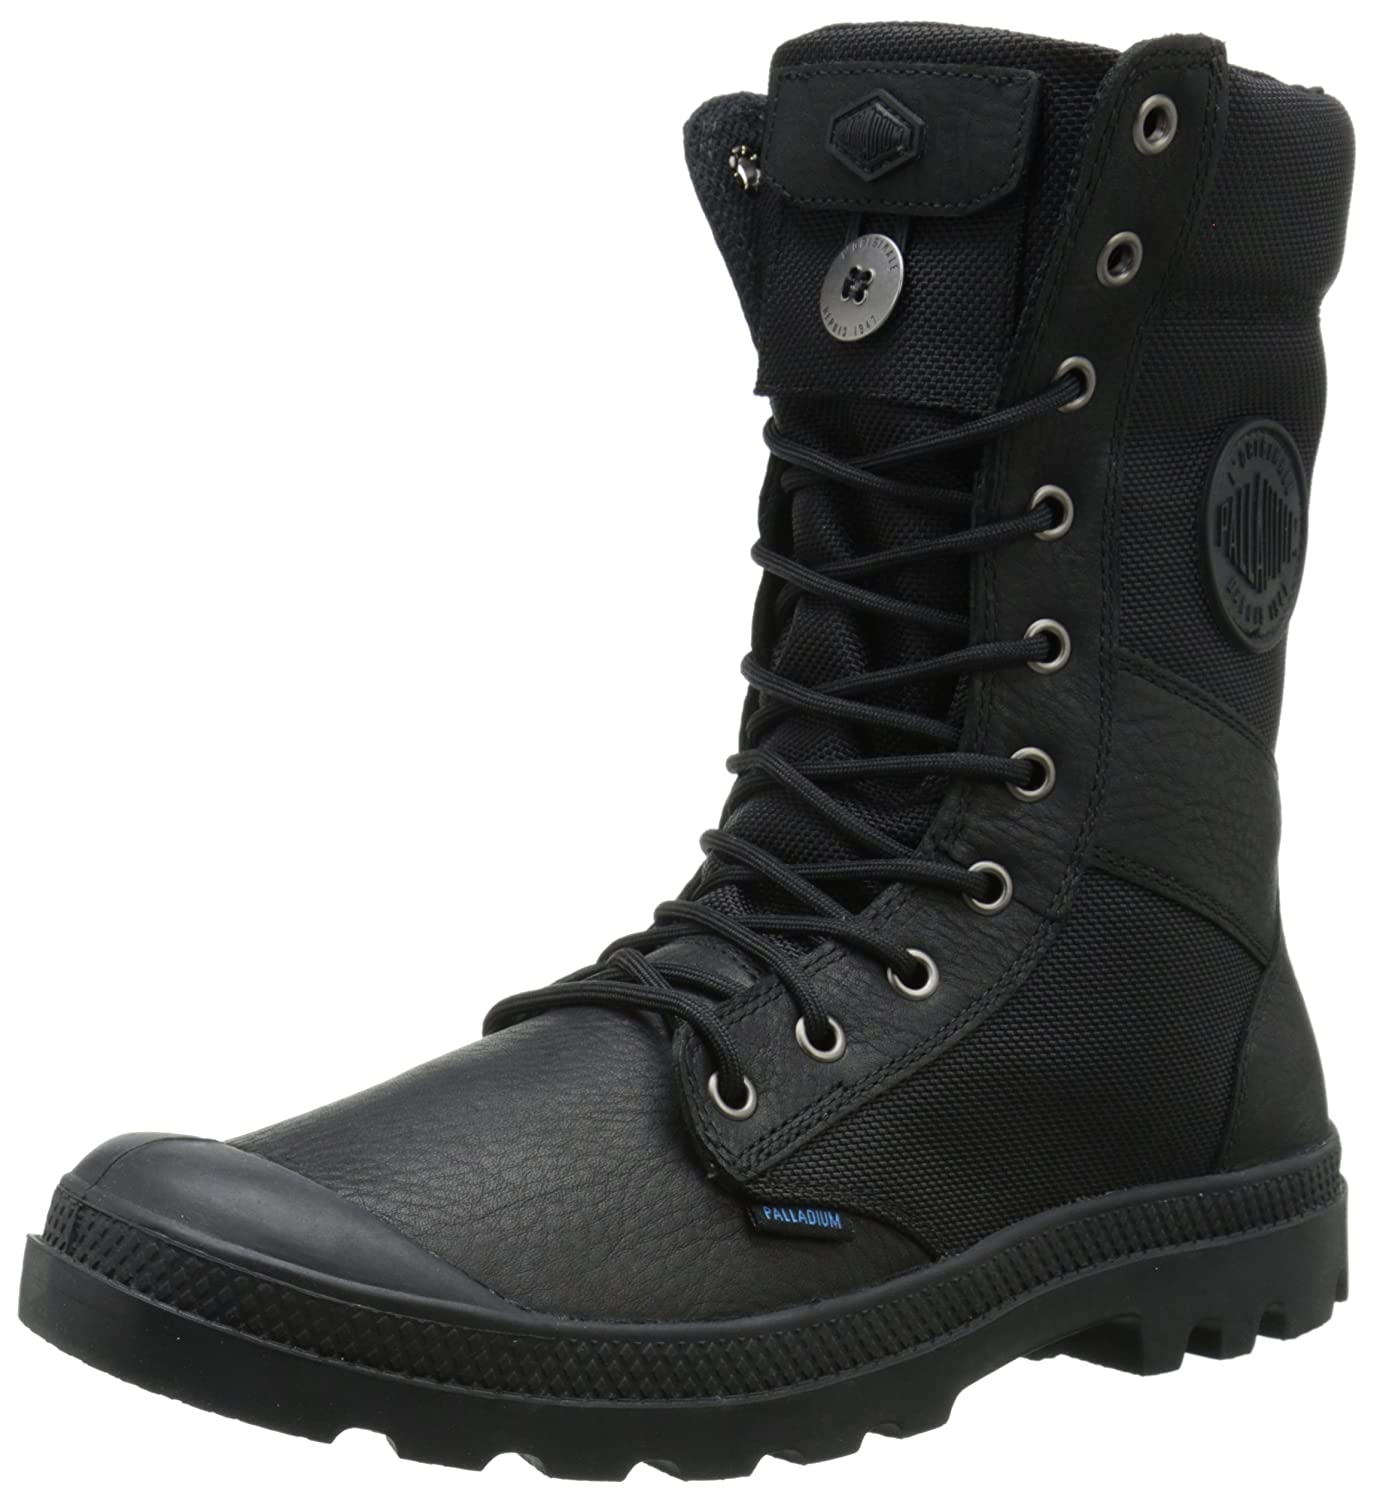 Amazon.com: Palladium Men's Tactical WPN Zip Rain Boot: Shoes